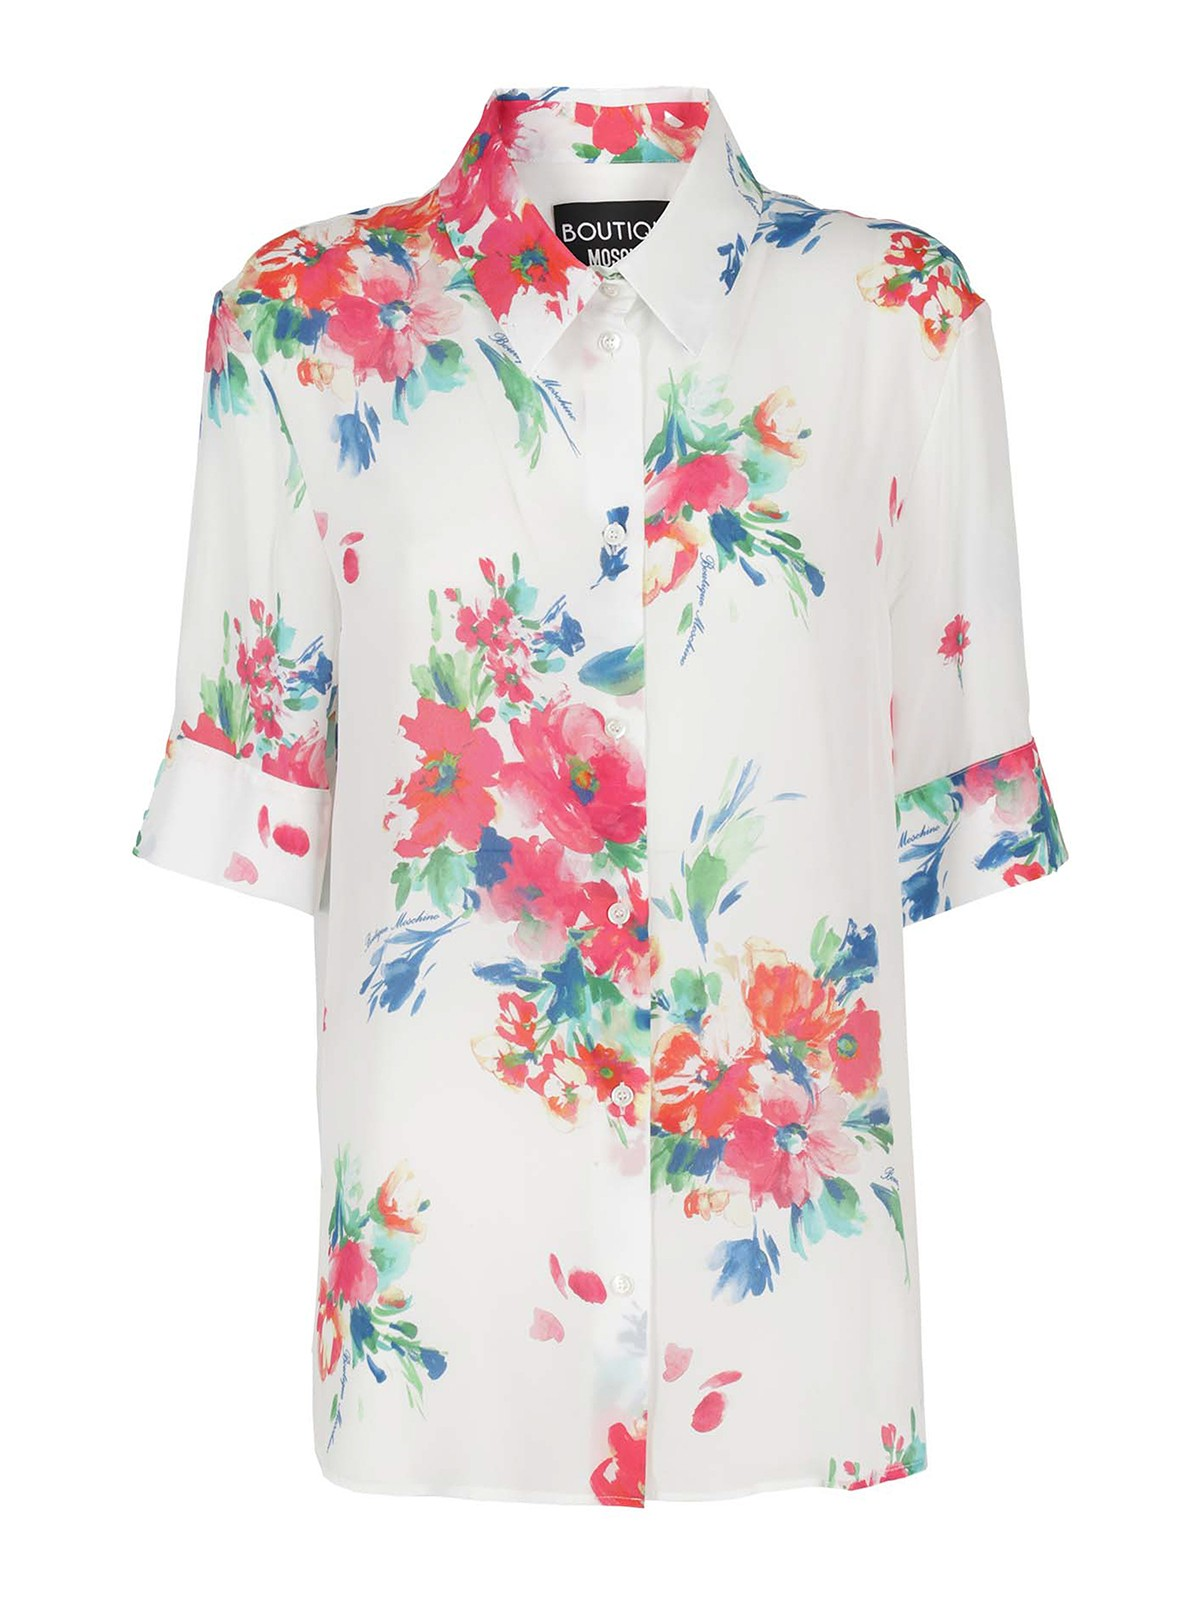 Boutique Moschino Cottons FLORAL PRINTED SHIRT